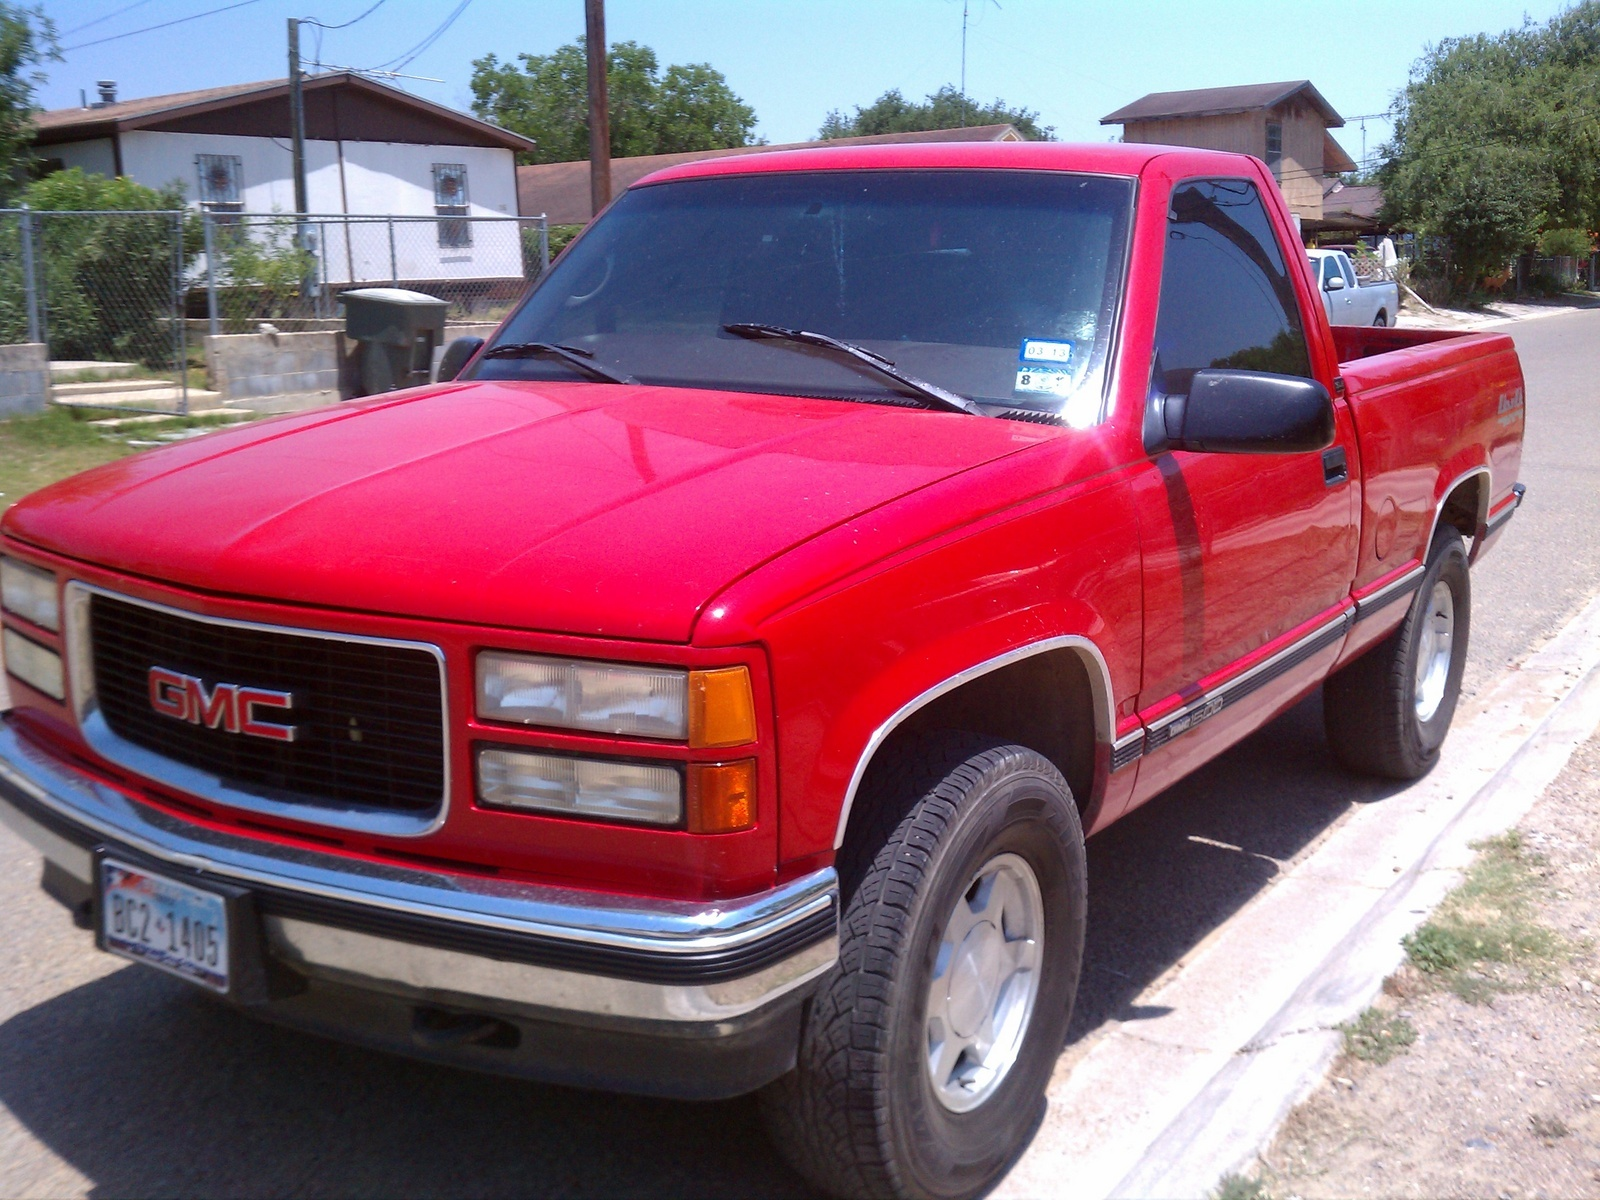 I have a 1997 gmc sierra 1500 i want to replace the 97 computer with a 1998 computer so i can tune it can i do that